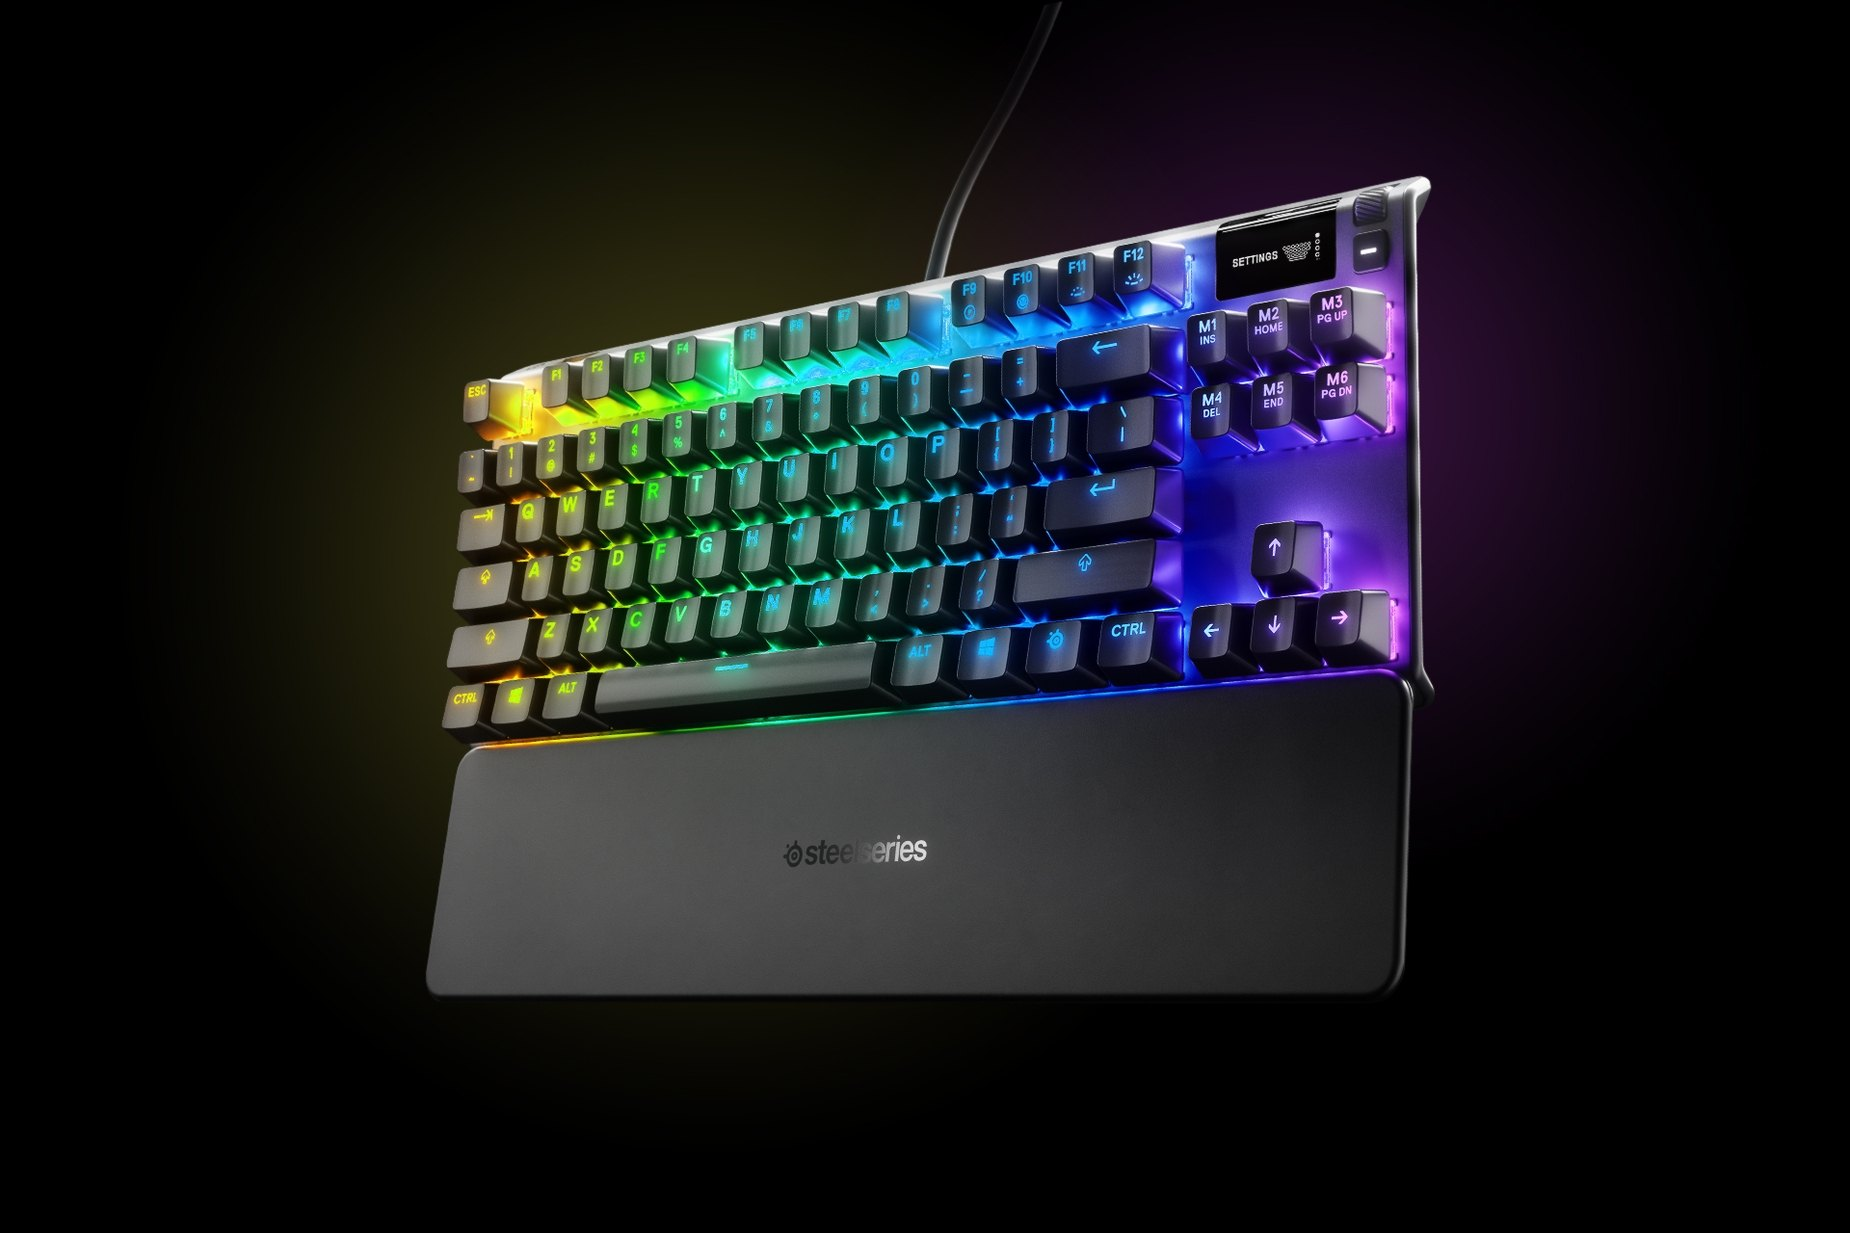 Korece - Apex 7 TKL (Blue Switch) gaming keyboard with the illumination lit up on dark background, also shows the OLED screen and controls used to change settings and adjust audio